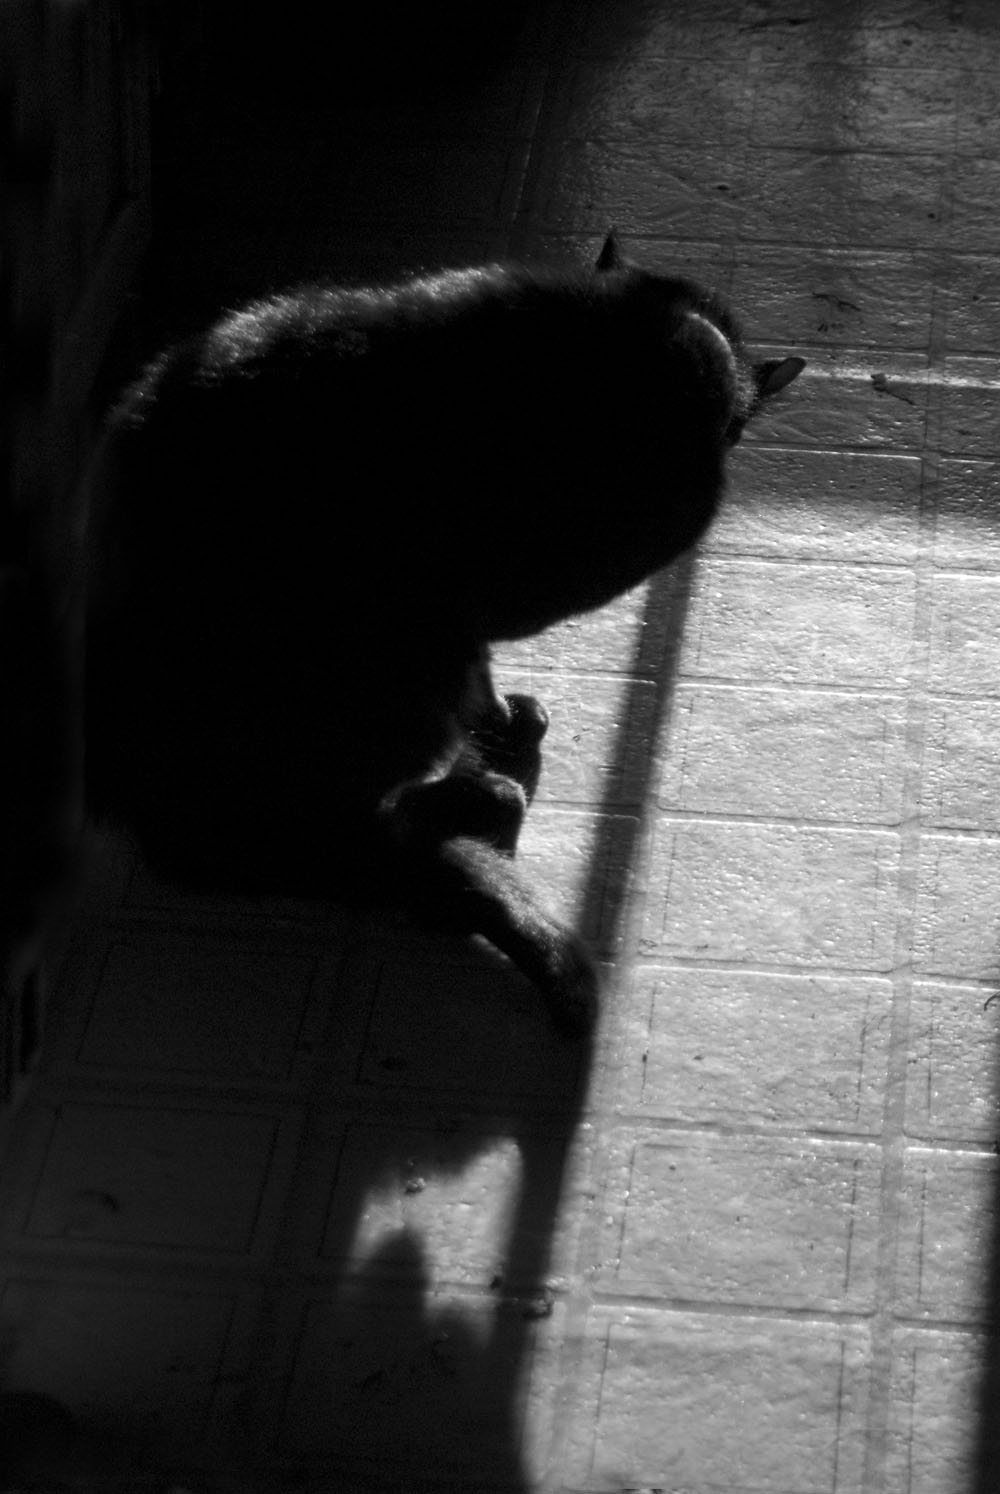 black and white photo of cat bathing Daily Cat Photo